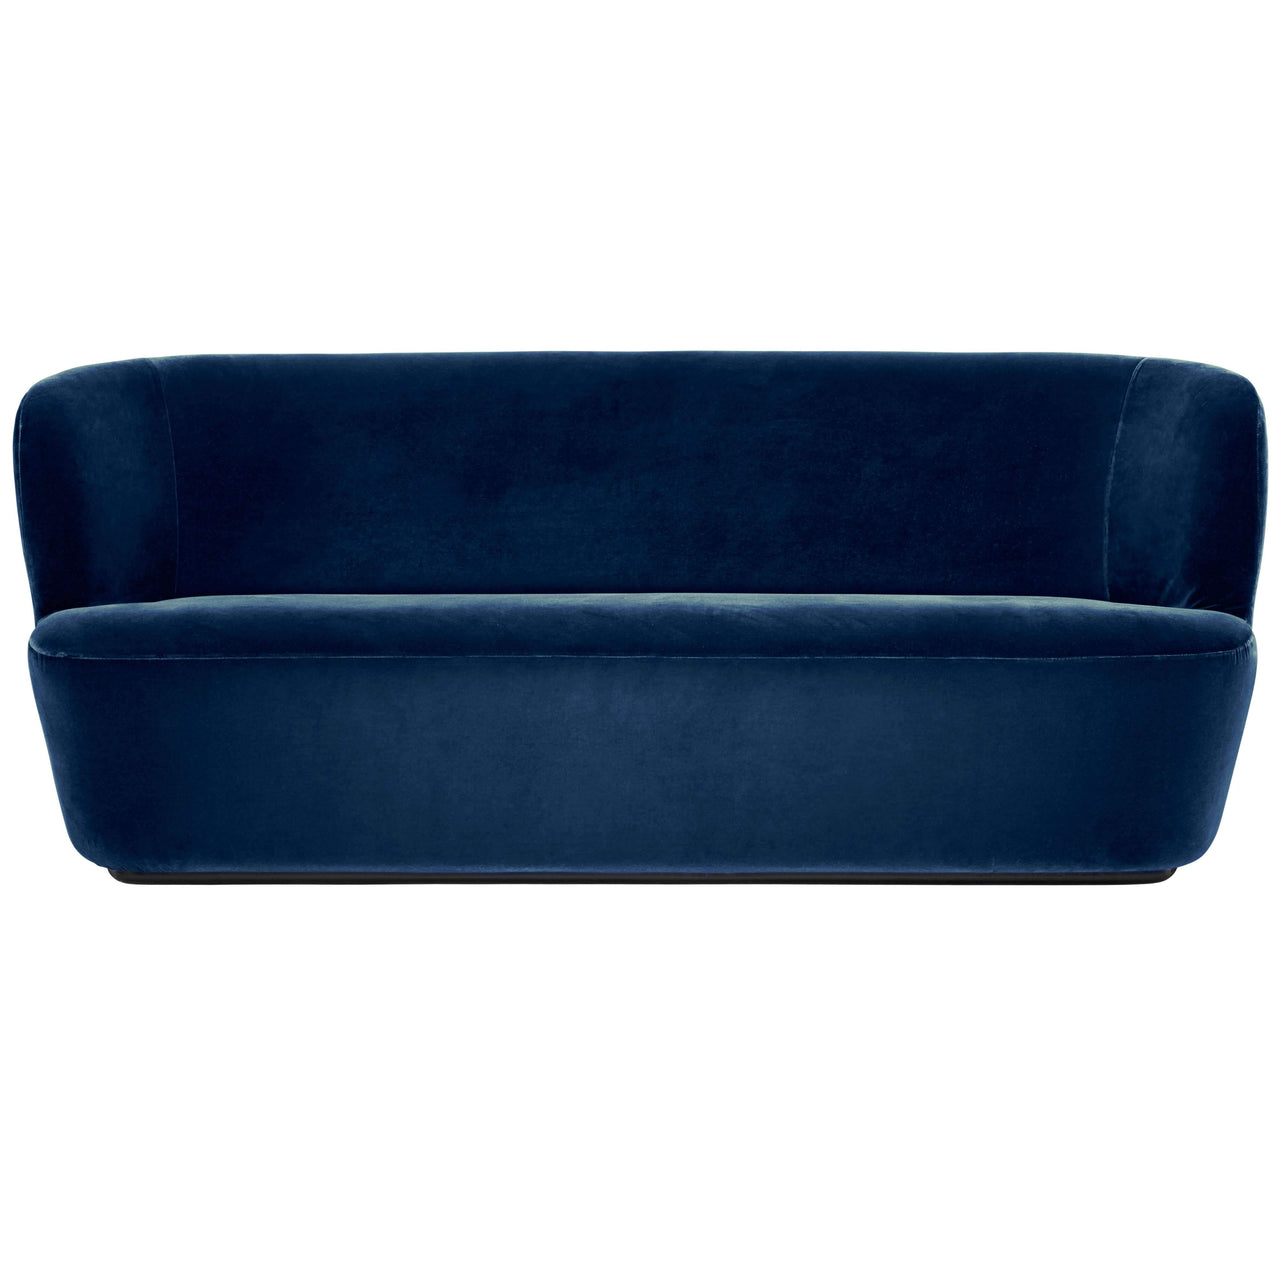 Amazing Stay 2 Seater Sofa Buy Gubi Online At A R Machost Co Dining Chair Design Ideas Machostcouk